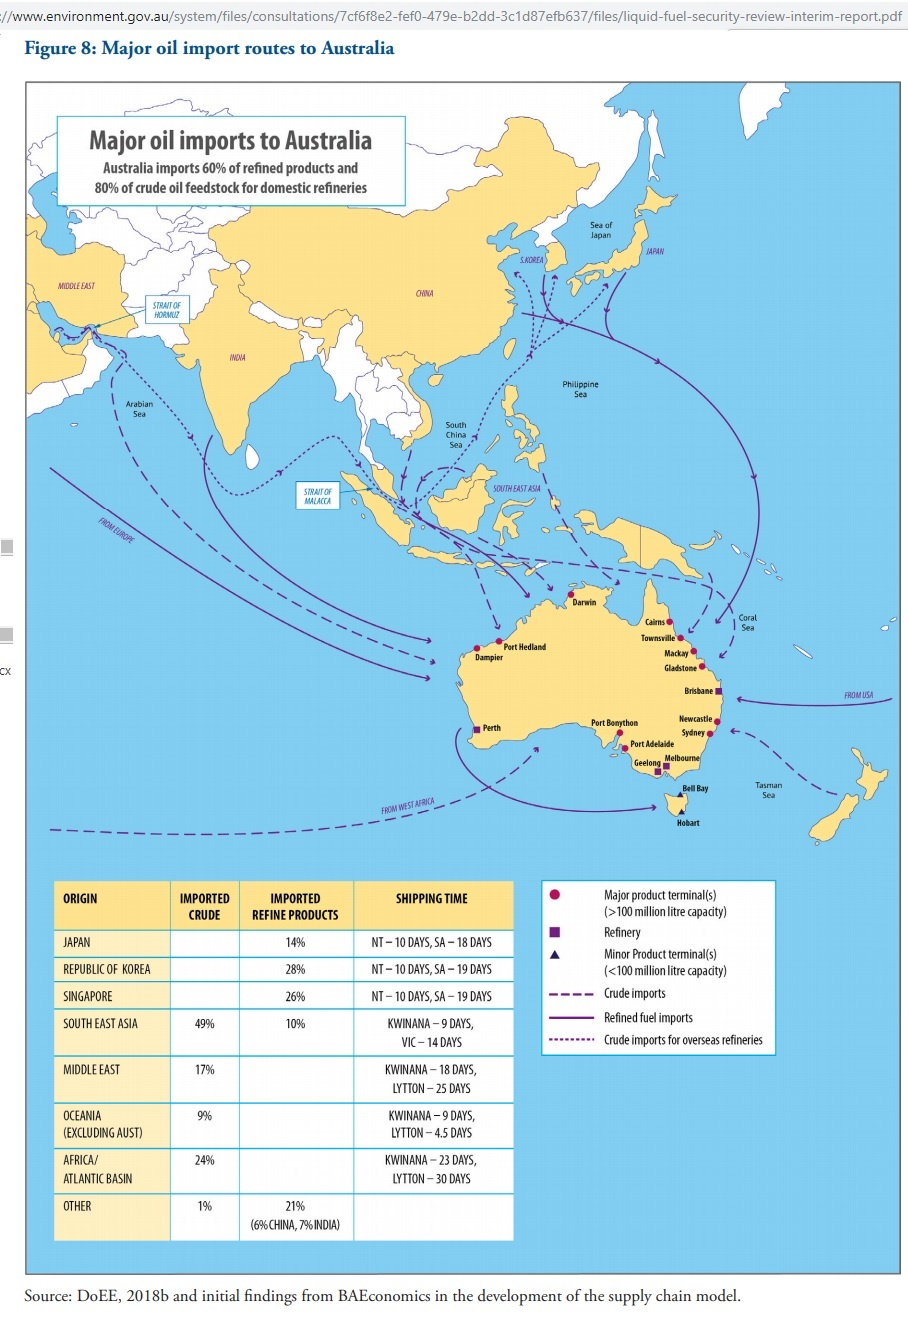 Australia_oil_supply_routes_2019